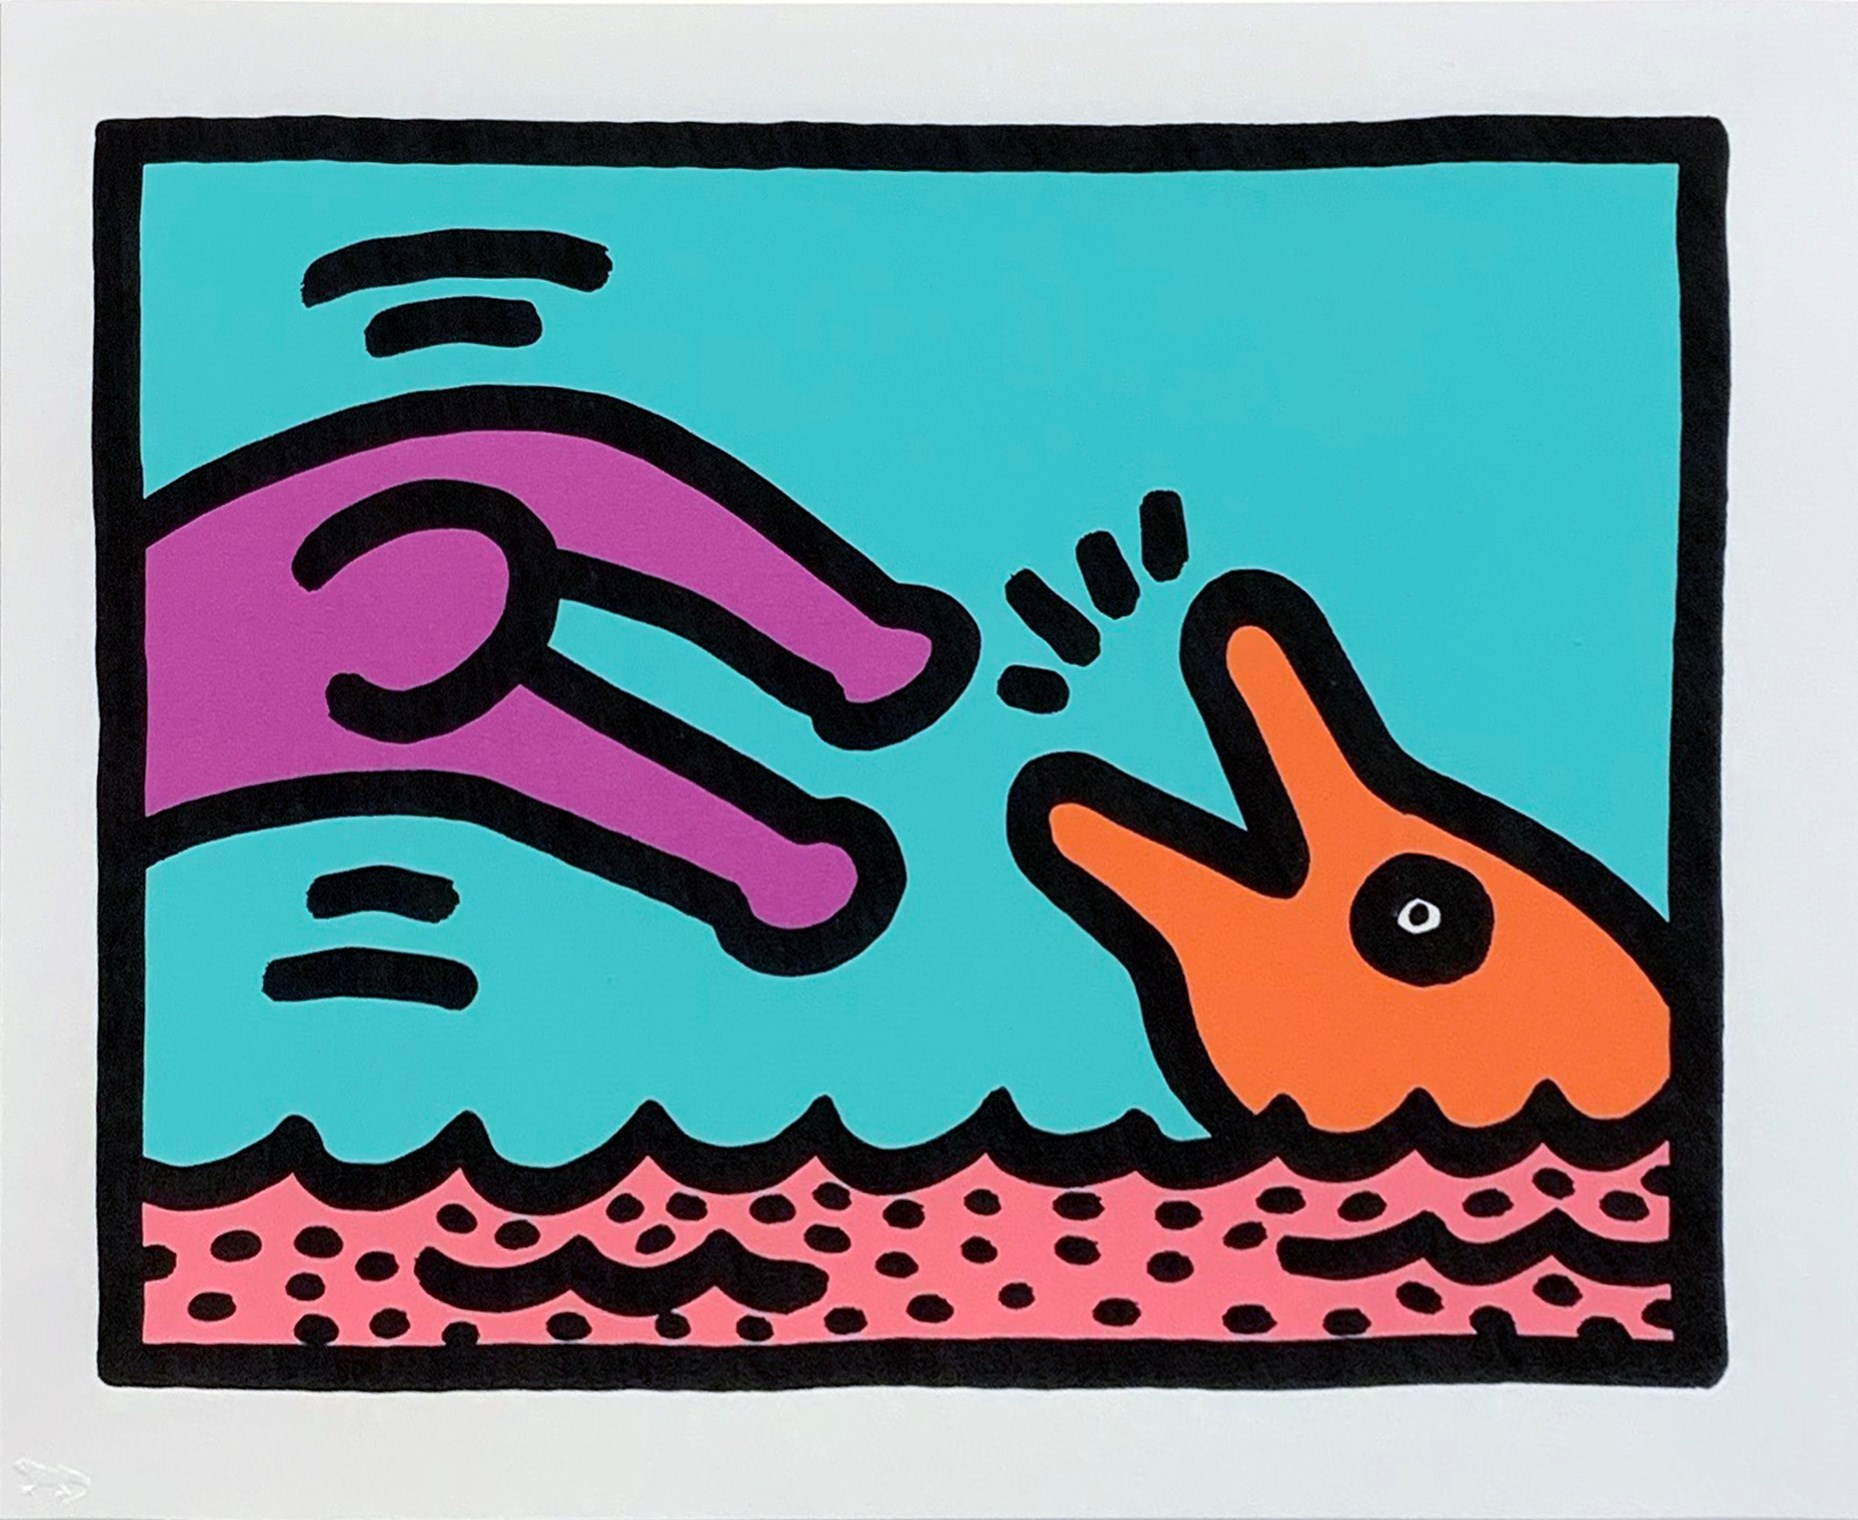 Pop Shop V (A) by Keith Haring